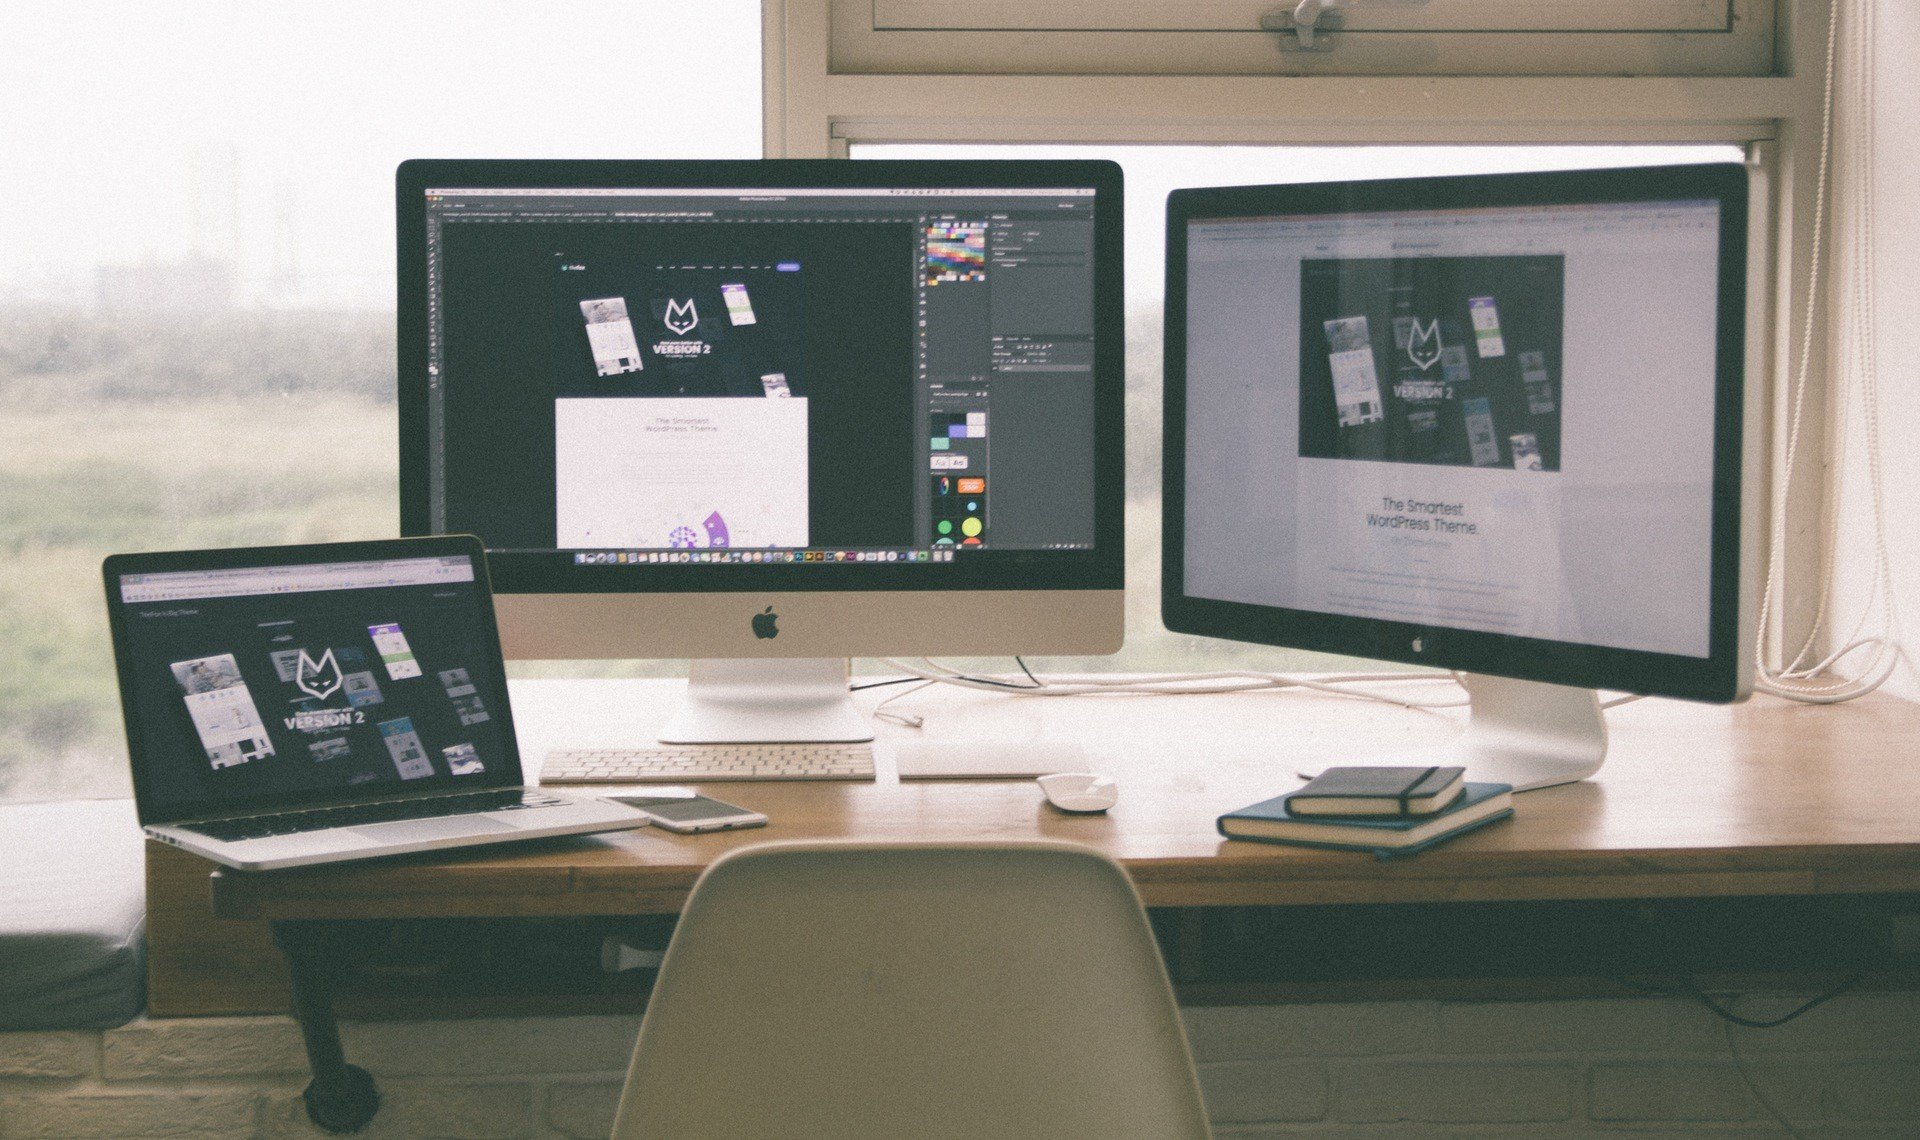 Businessmen Freelance Black White Books Computer Desk Electronic Office Internet Macbook Monitor Maus Tablet Phone Window Smartphone Technology Laptop Keyboards Hd Wallpapers Desktop And Mobile Images Photos